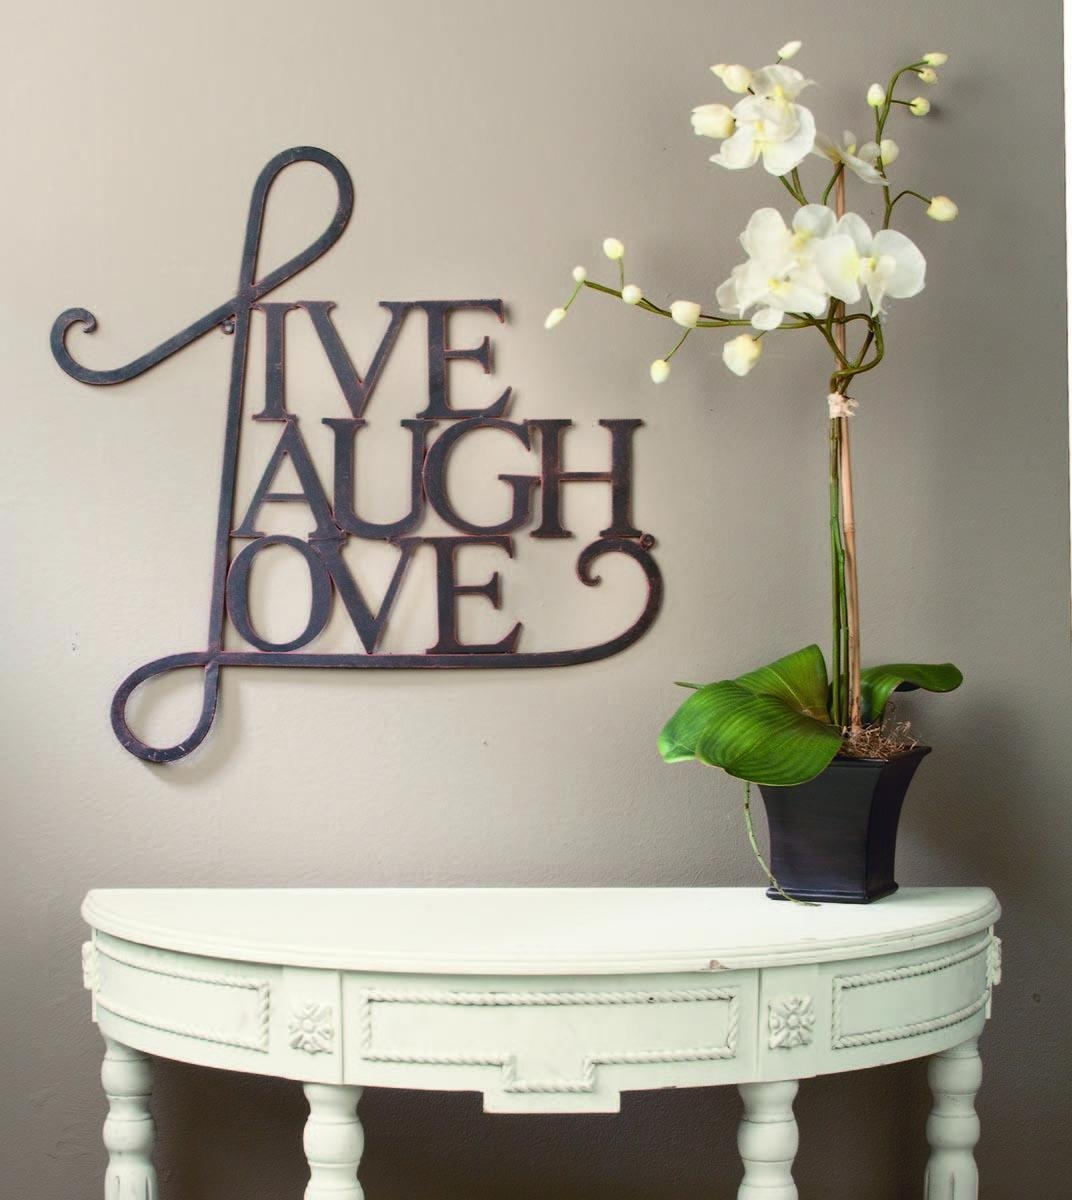 Attirant 3 Reasons Why You Should Choose Live Laugh Love Wall Décor With Live Laugh  Love Wall